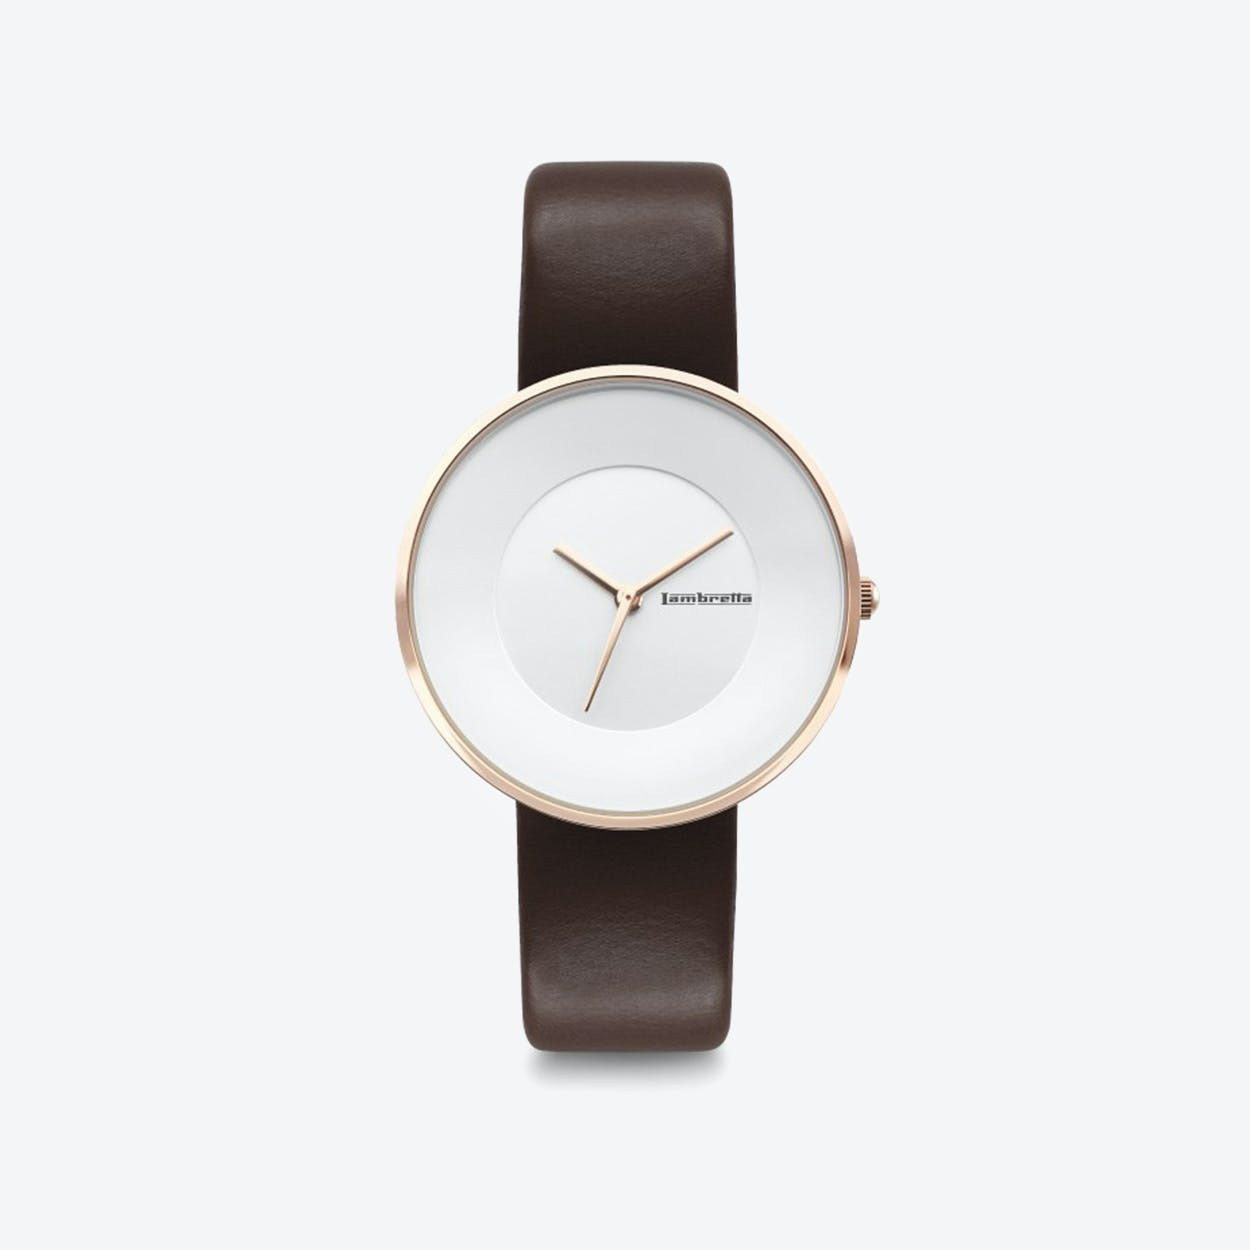 Cielo in Rose Gold with White Face & Moro Leather Strap, 34mm